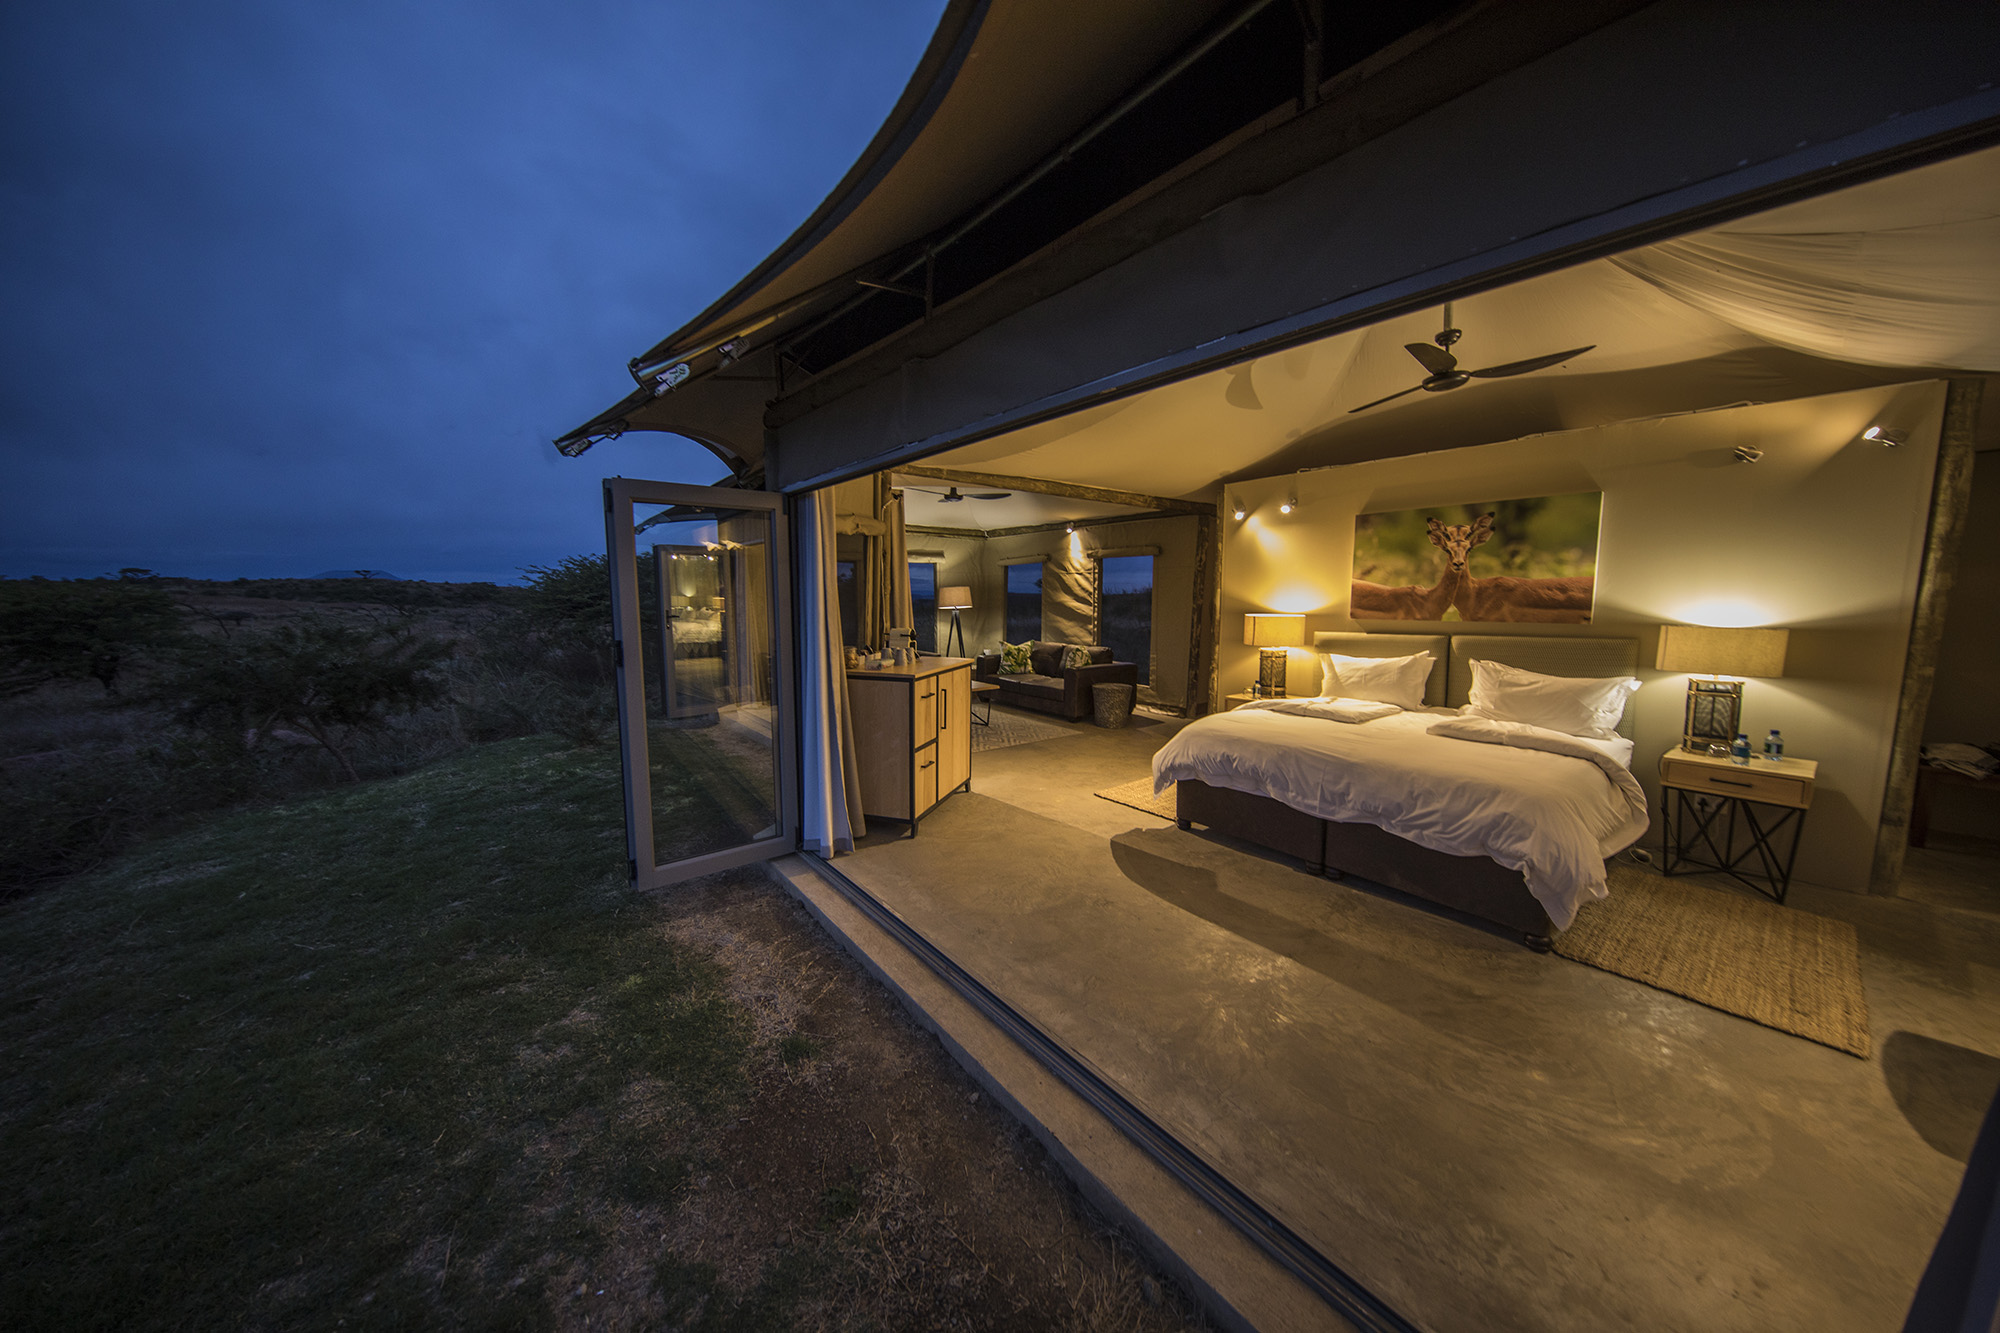 Ndaka safari lodge - tented accommodation